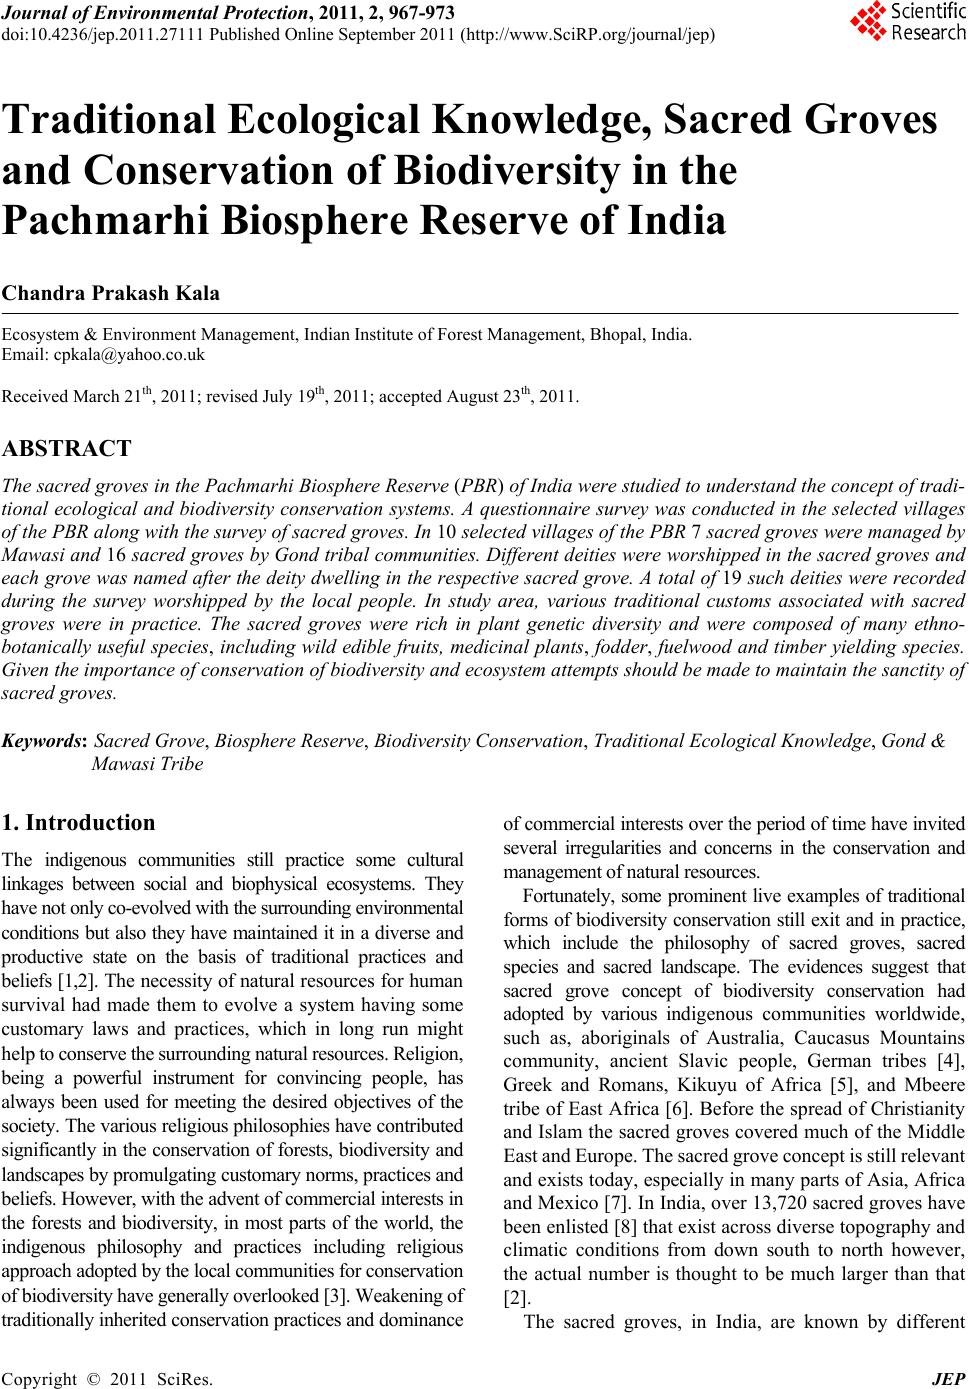 Essay on conservation of biodiversity in india